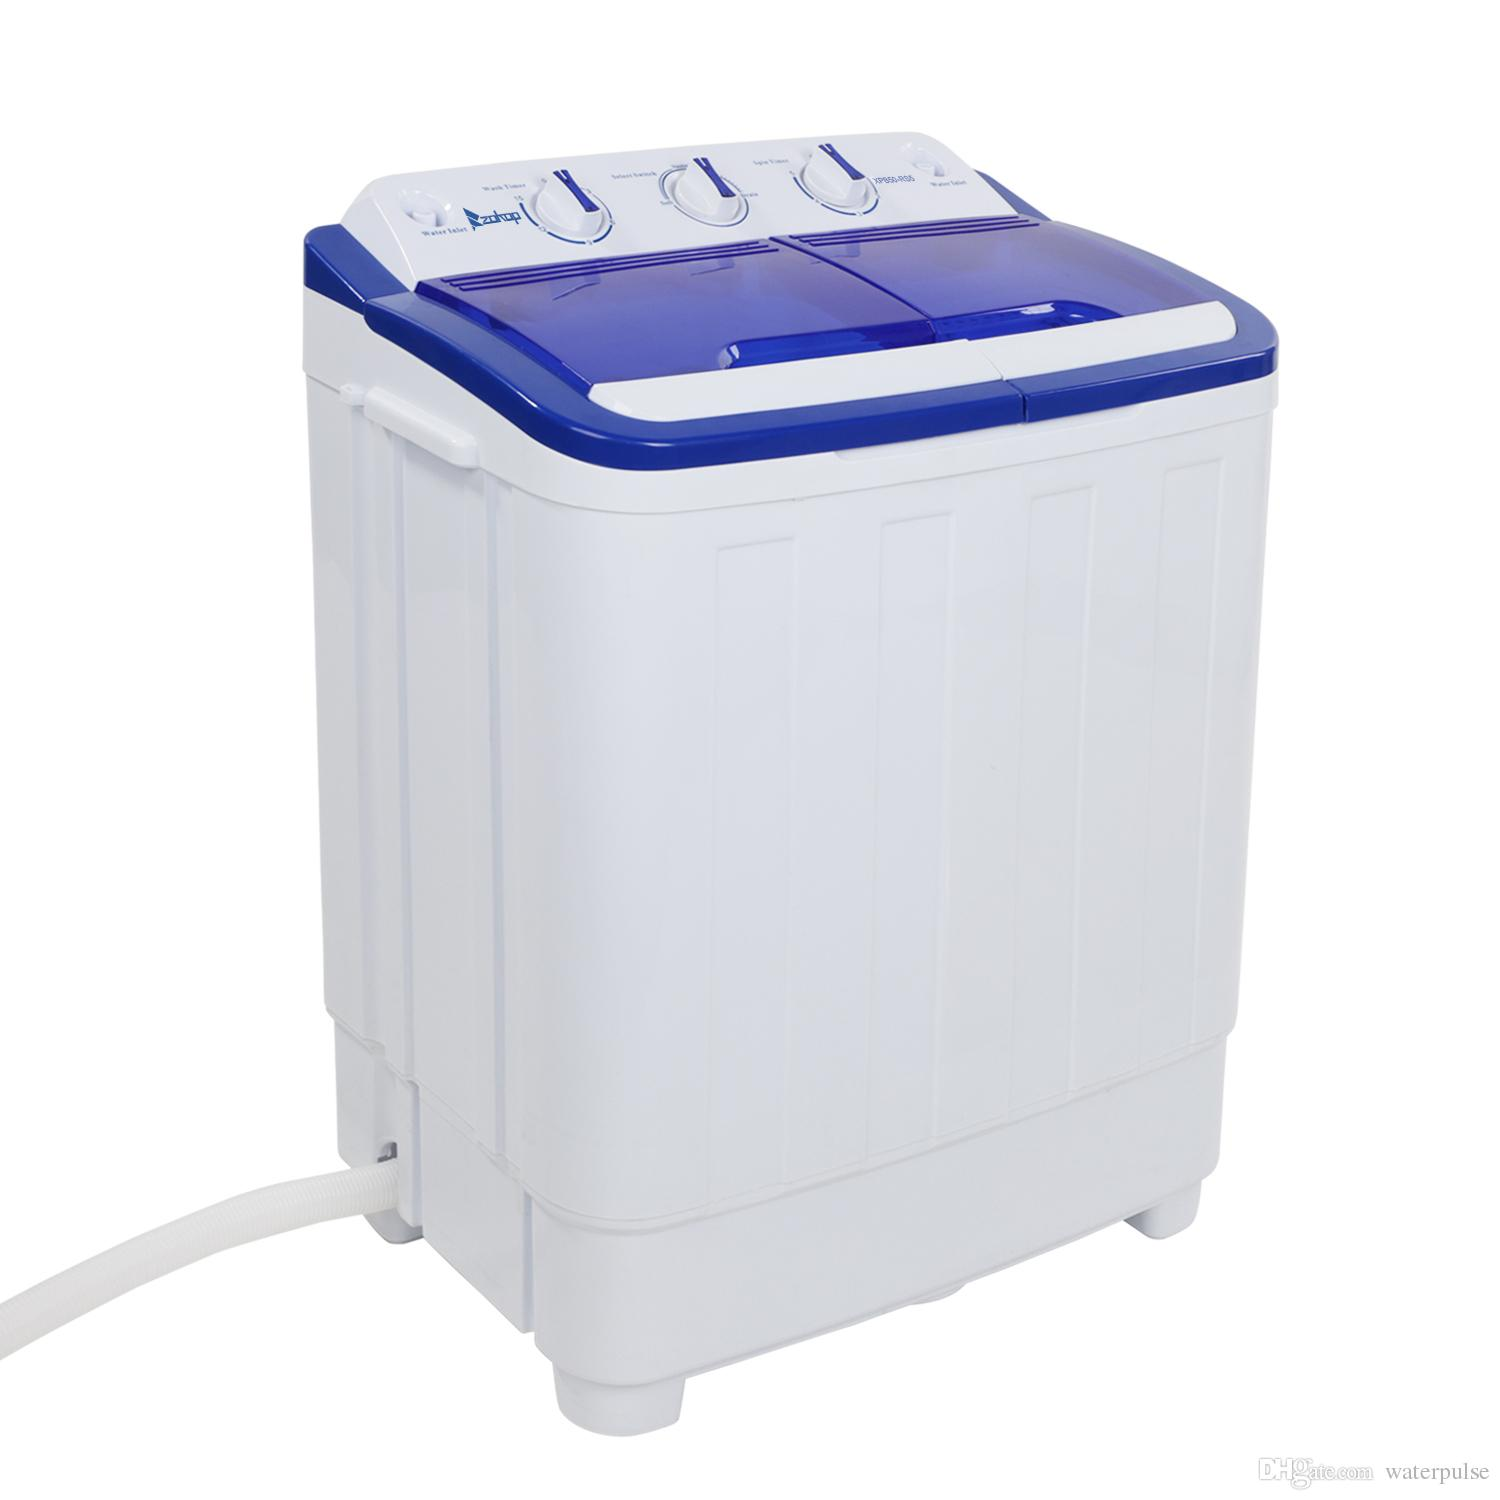 2019 Portable Washing Machine 16lbs Semi Automatic Compact